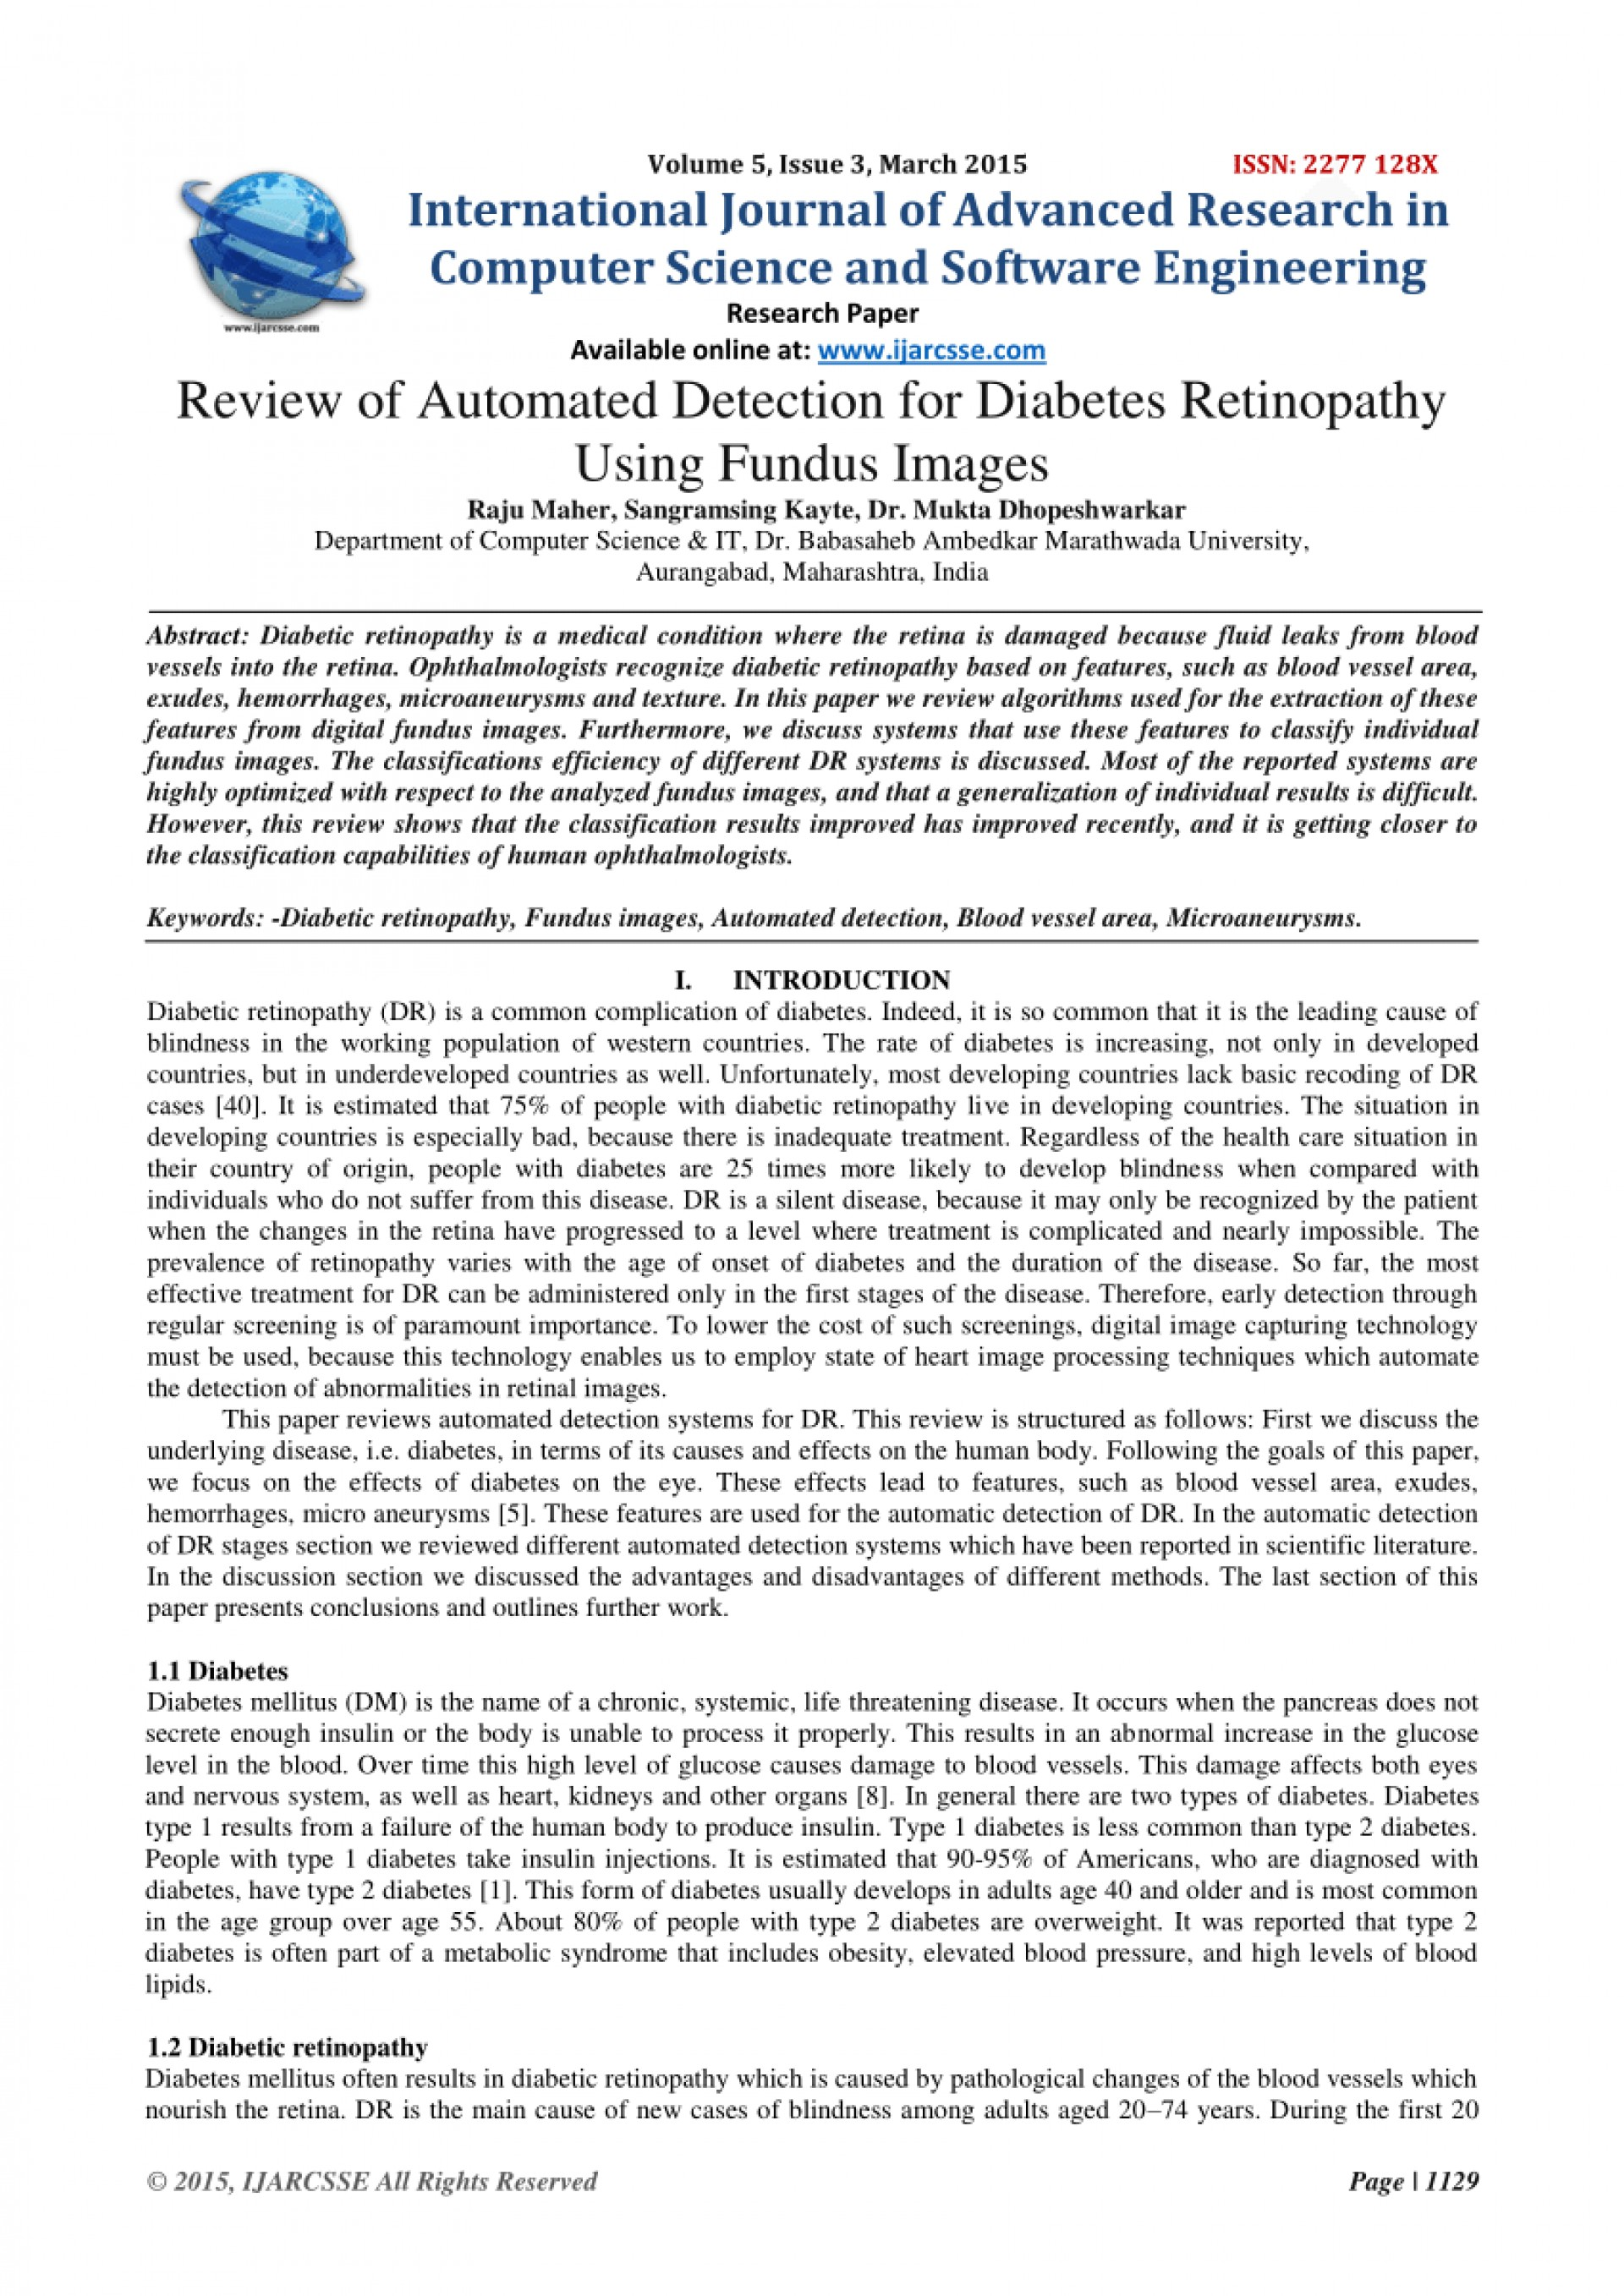 003 Research Paper Largepreview Diabetic Retinopathy Unusual Detection 1920